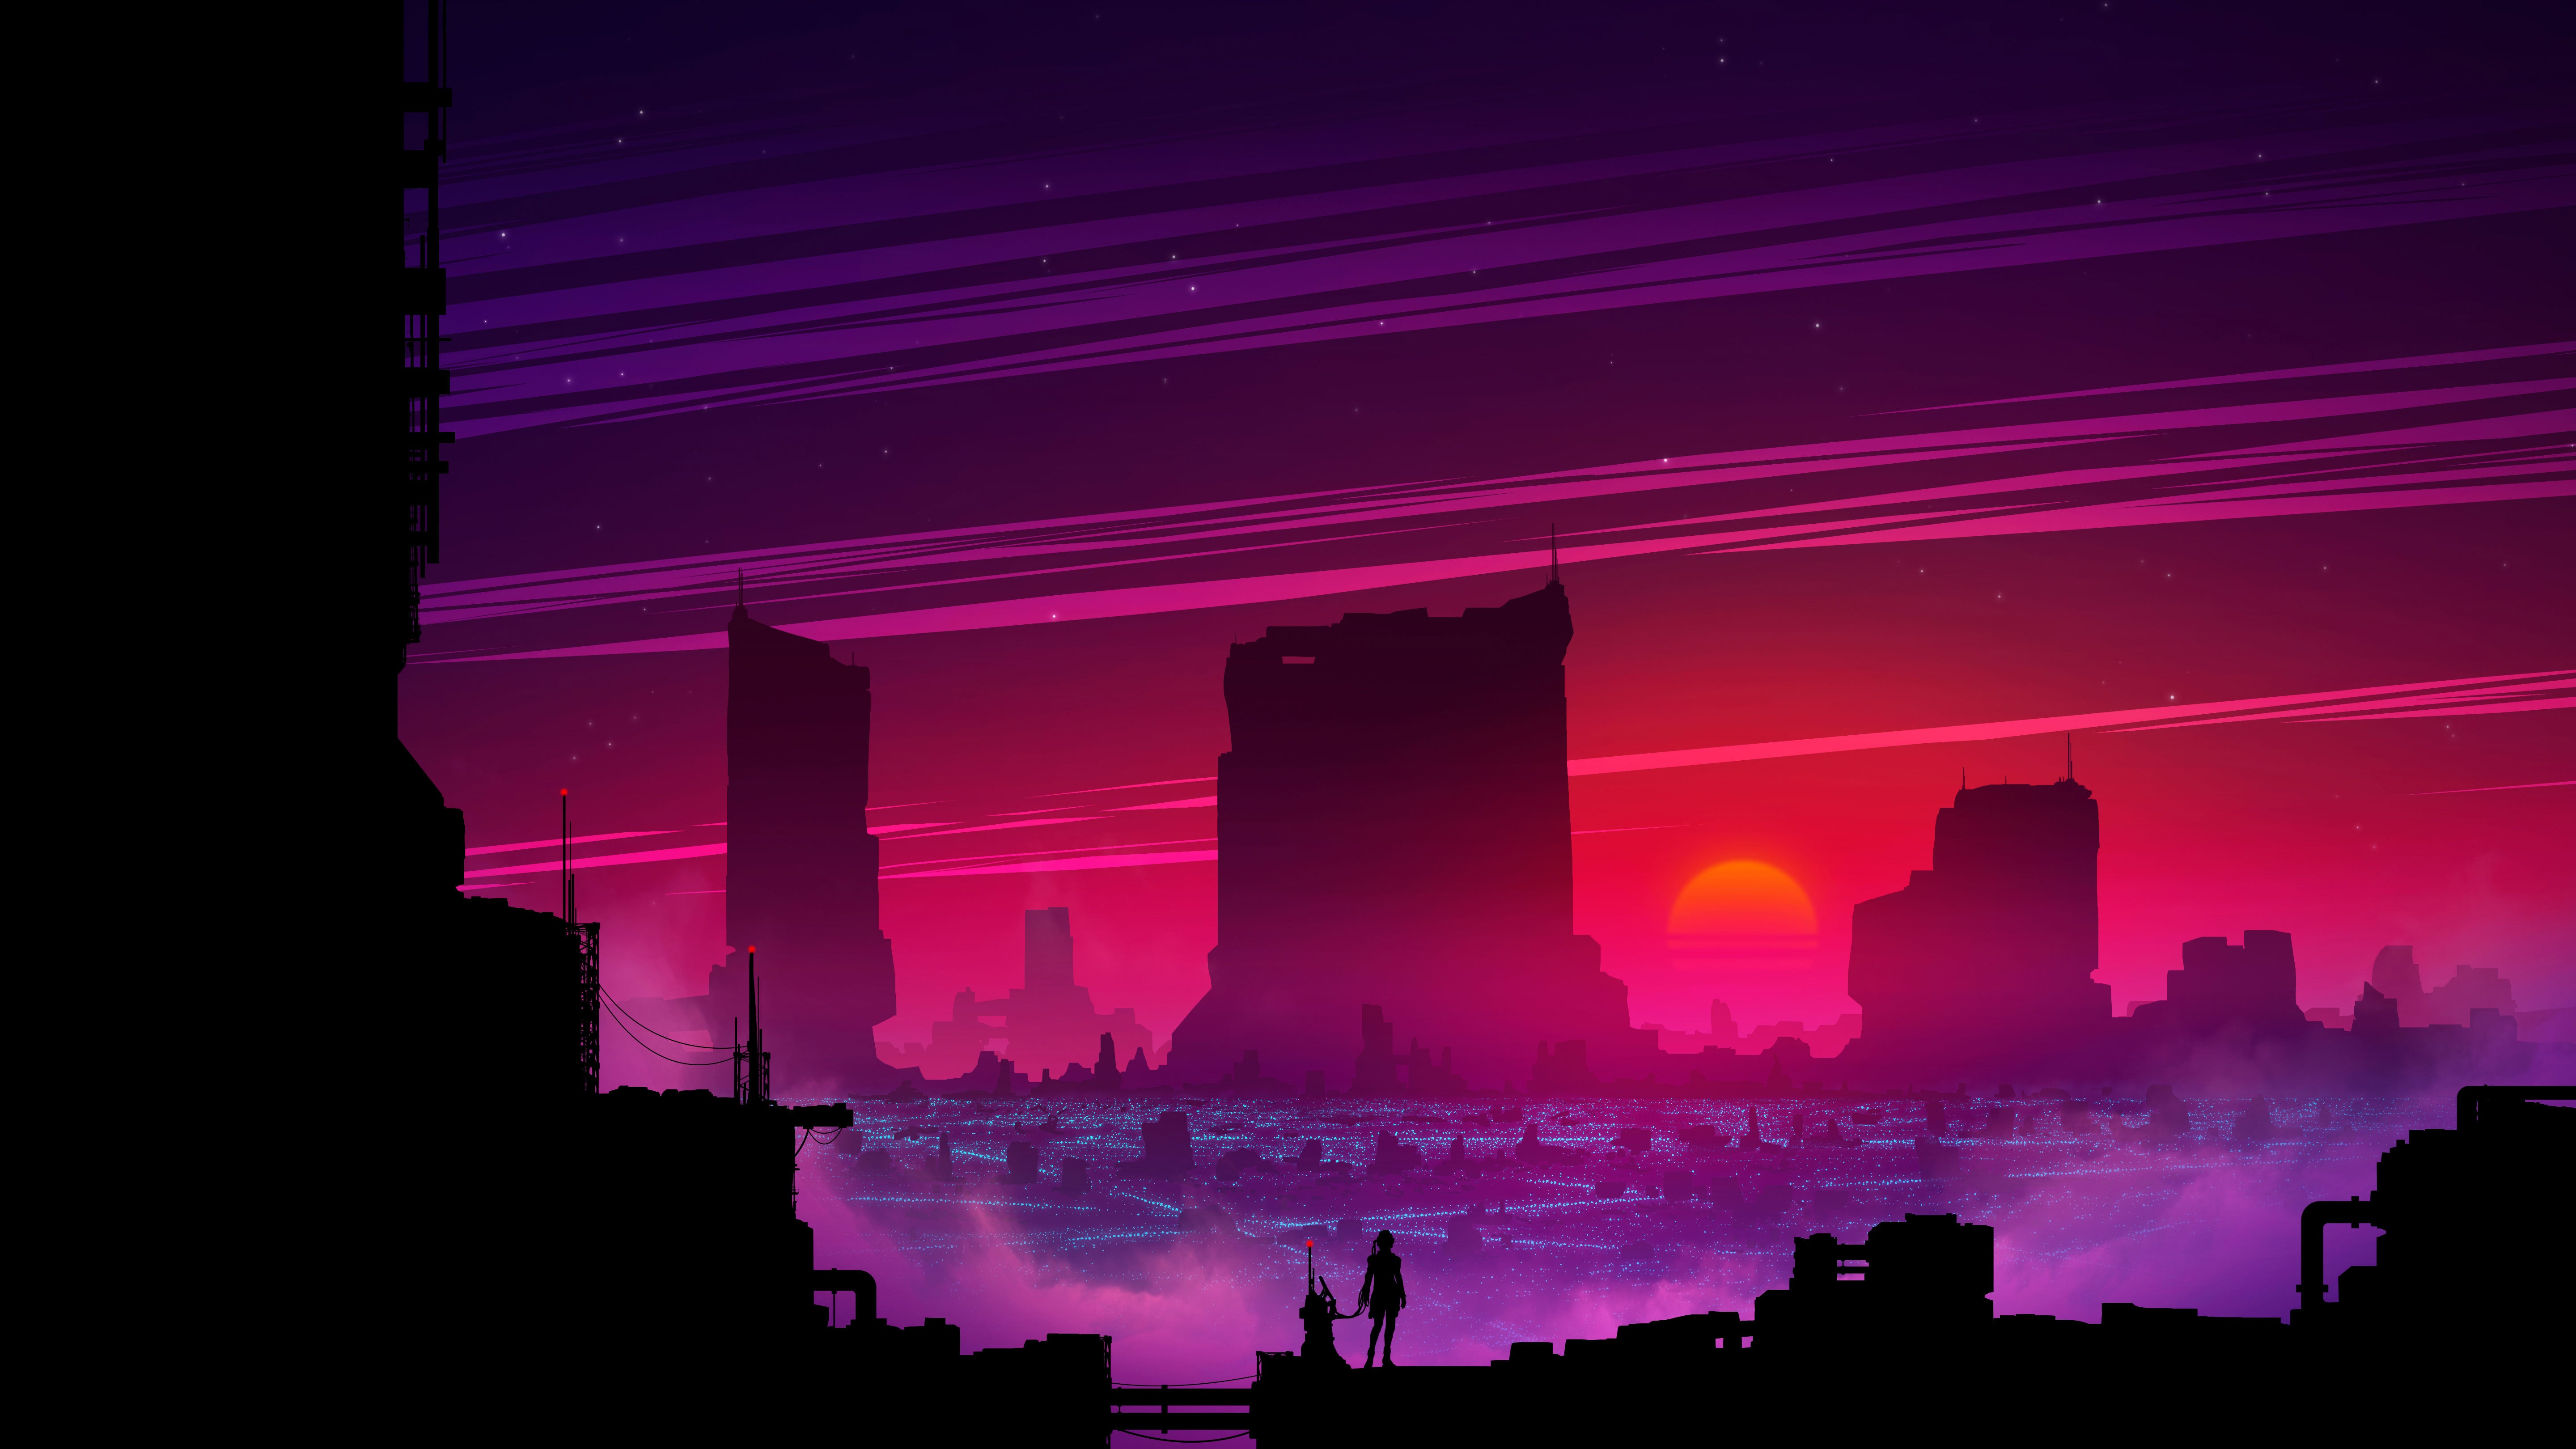 Future City Sunset 4k Wallpaper Browse millions of popular air wallpapers and ringtones on zedge and personalize your phone to suit you. 4k wallpapers